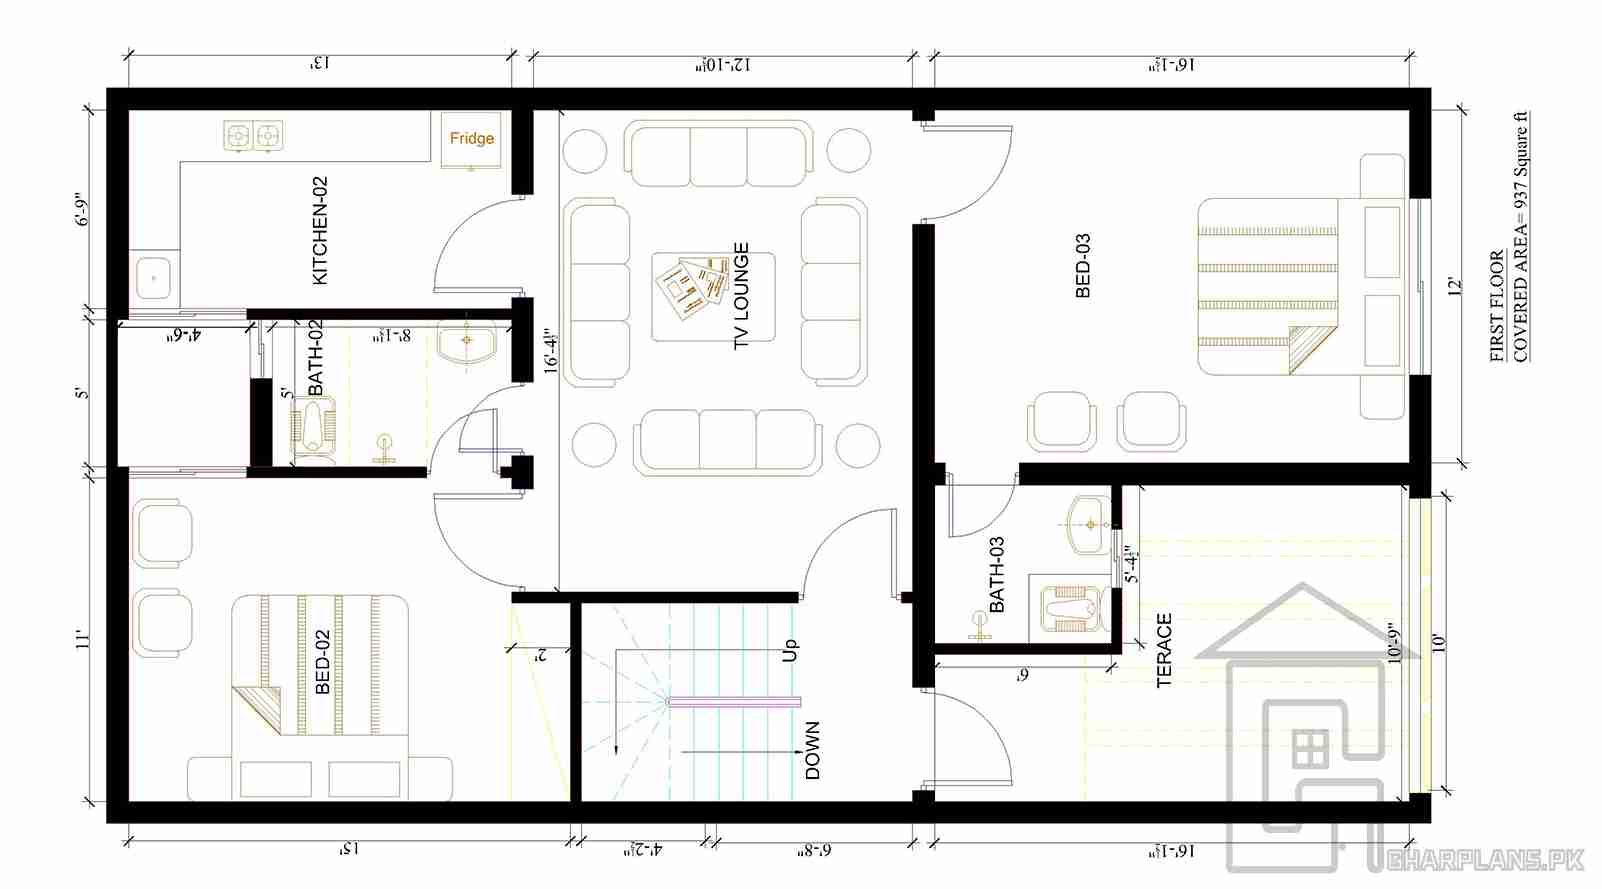 5 Marla House Floor Plan Of A House Constructed In Pakistan As It Is A Standard House Plan And Has 3 Bedrooms One Floor House Plans House Plans My House Plans